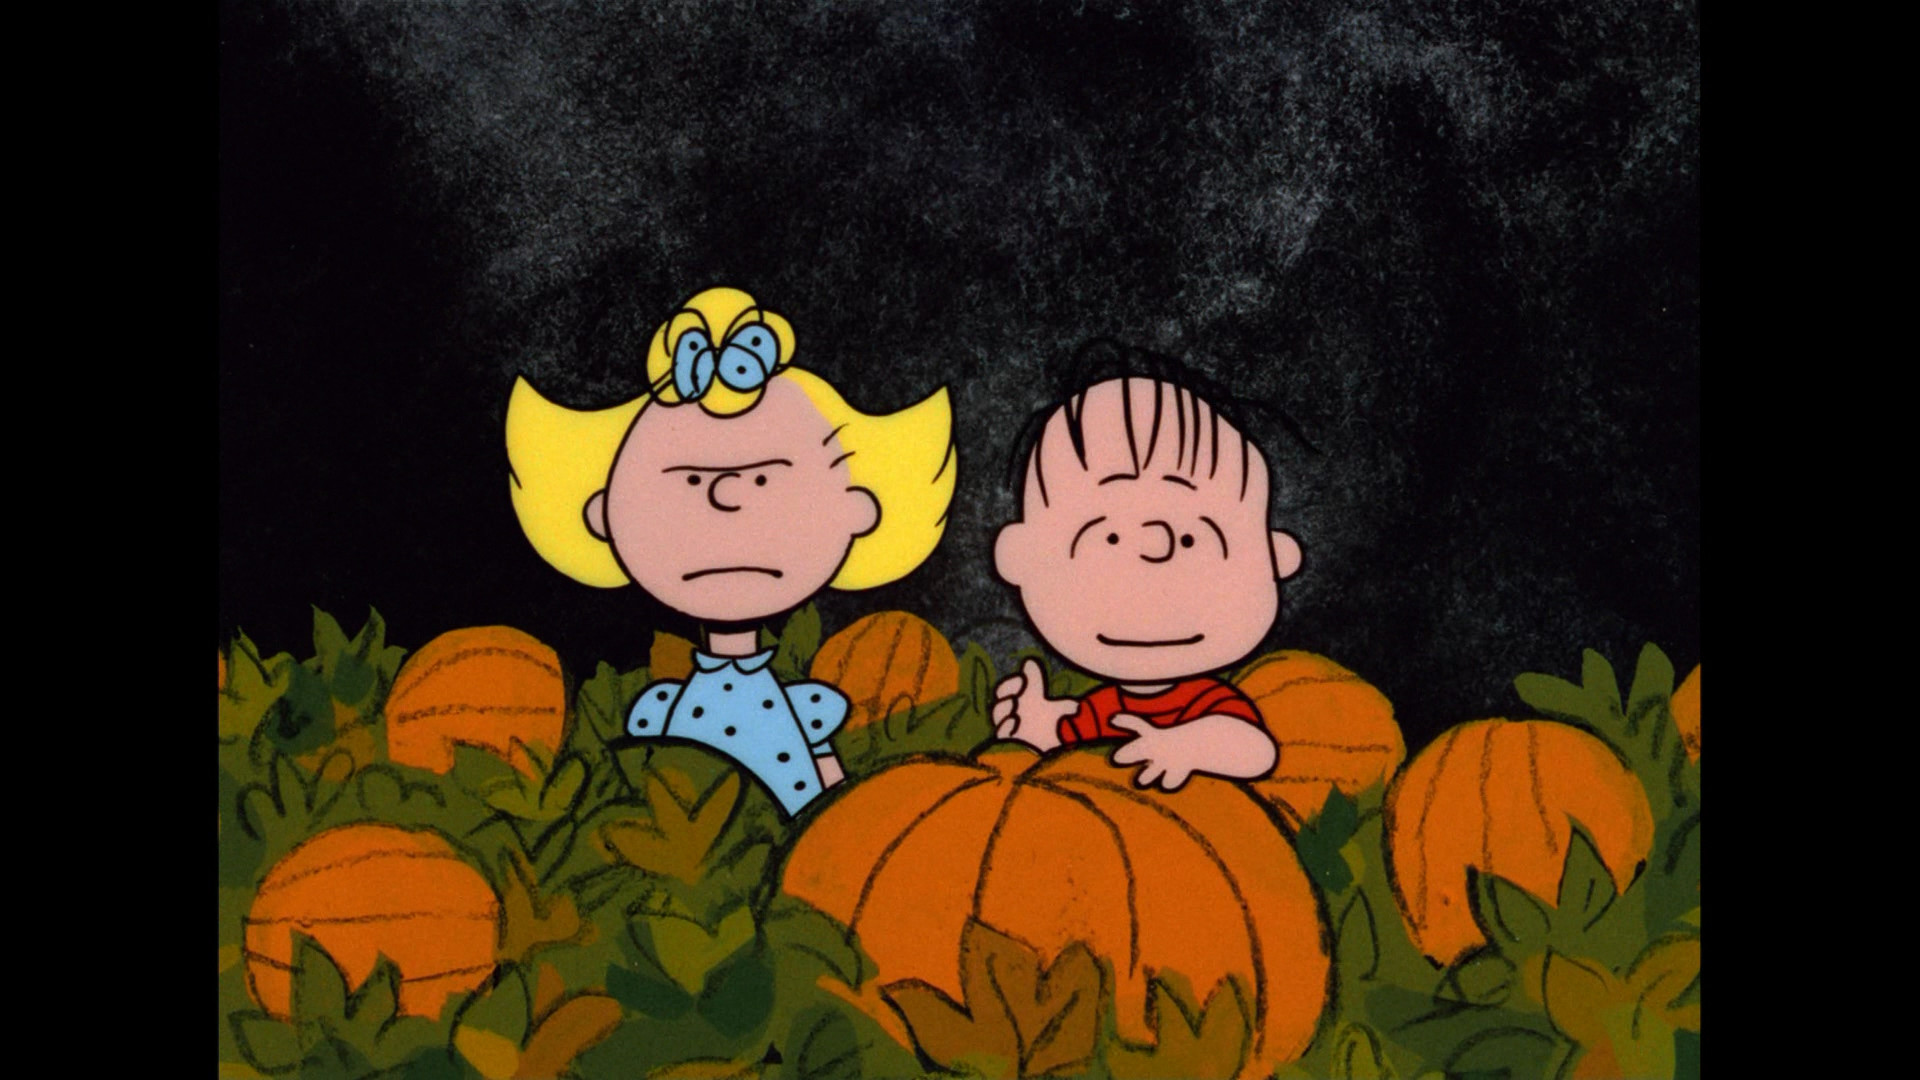 1920x1080 Charlie Brown Halloween id 94366 Source · Charlie brown halloween wallpaper